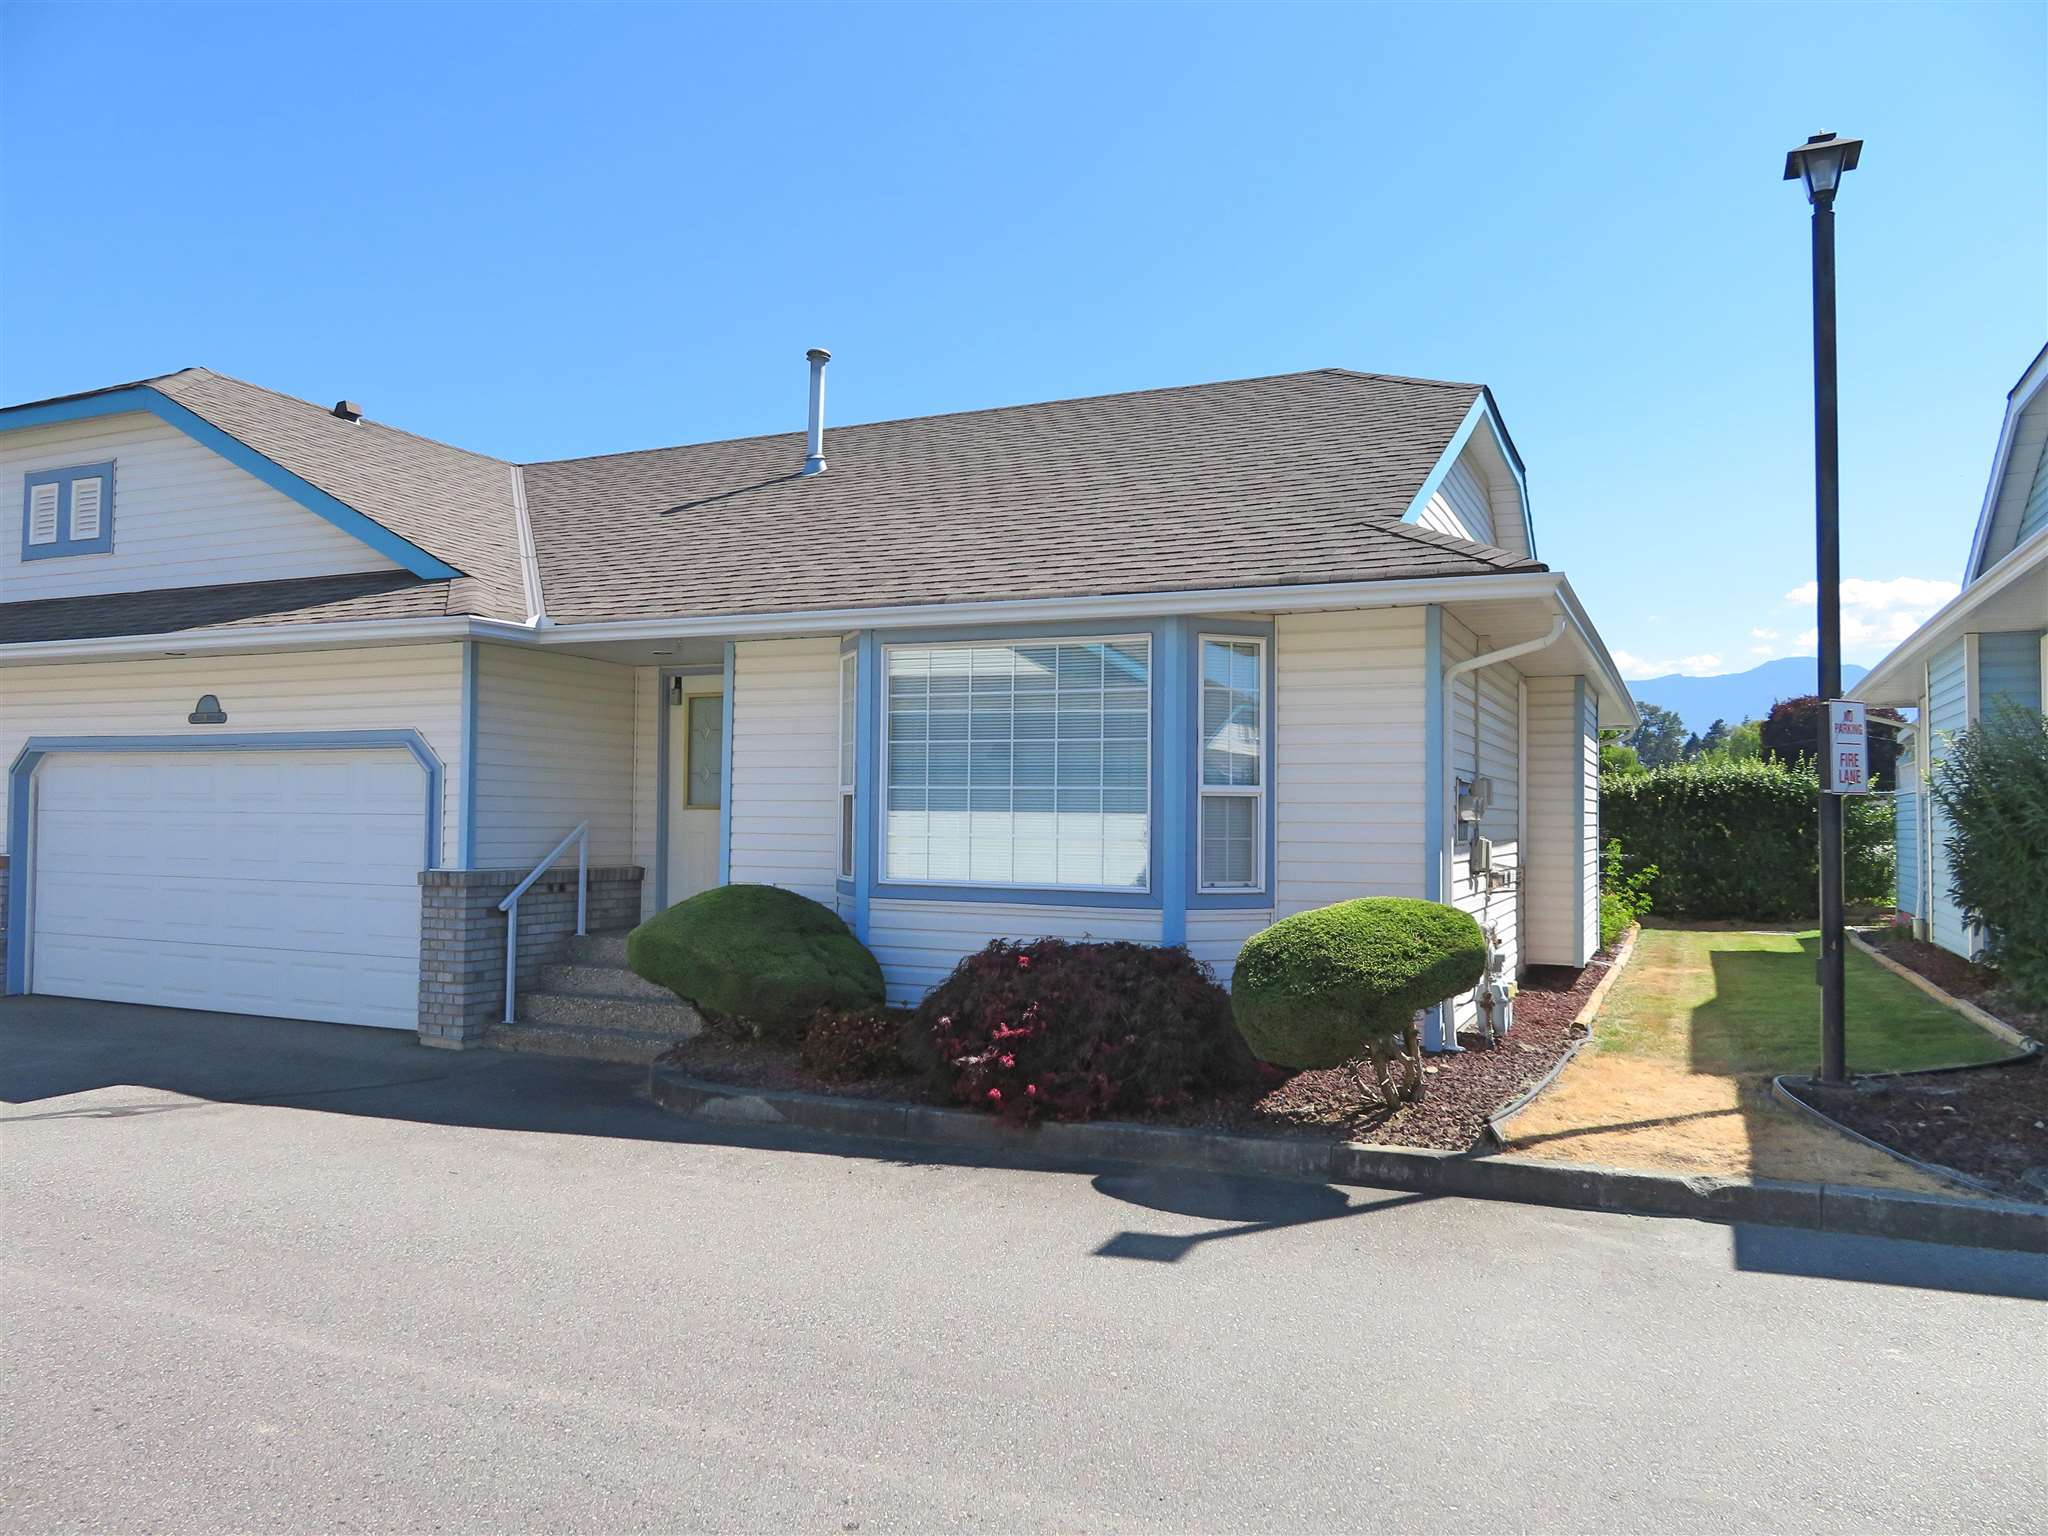 56 45175 WELLS ROAD - Sardis West Vedder Rd Townhouse for sale, 2 Bedrooms (R2605395) - #1